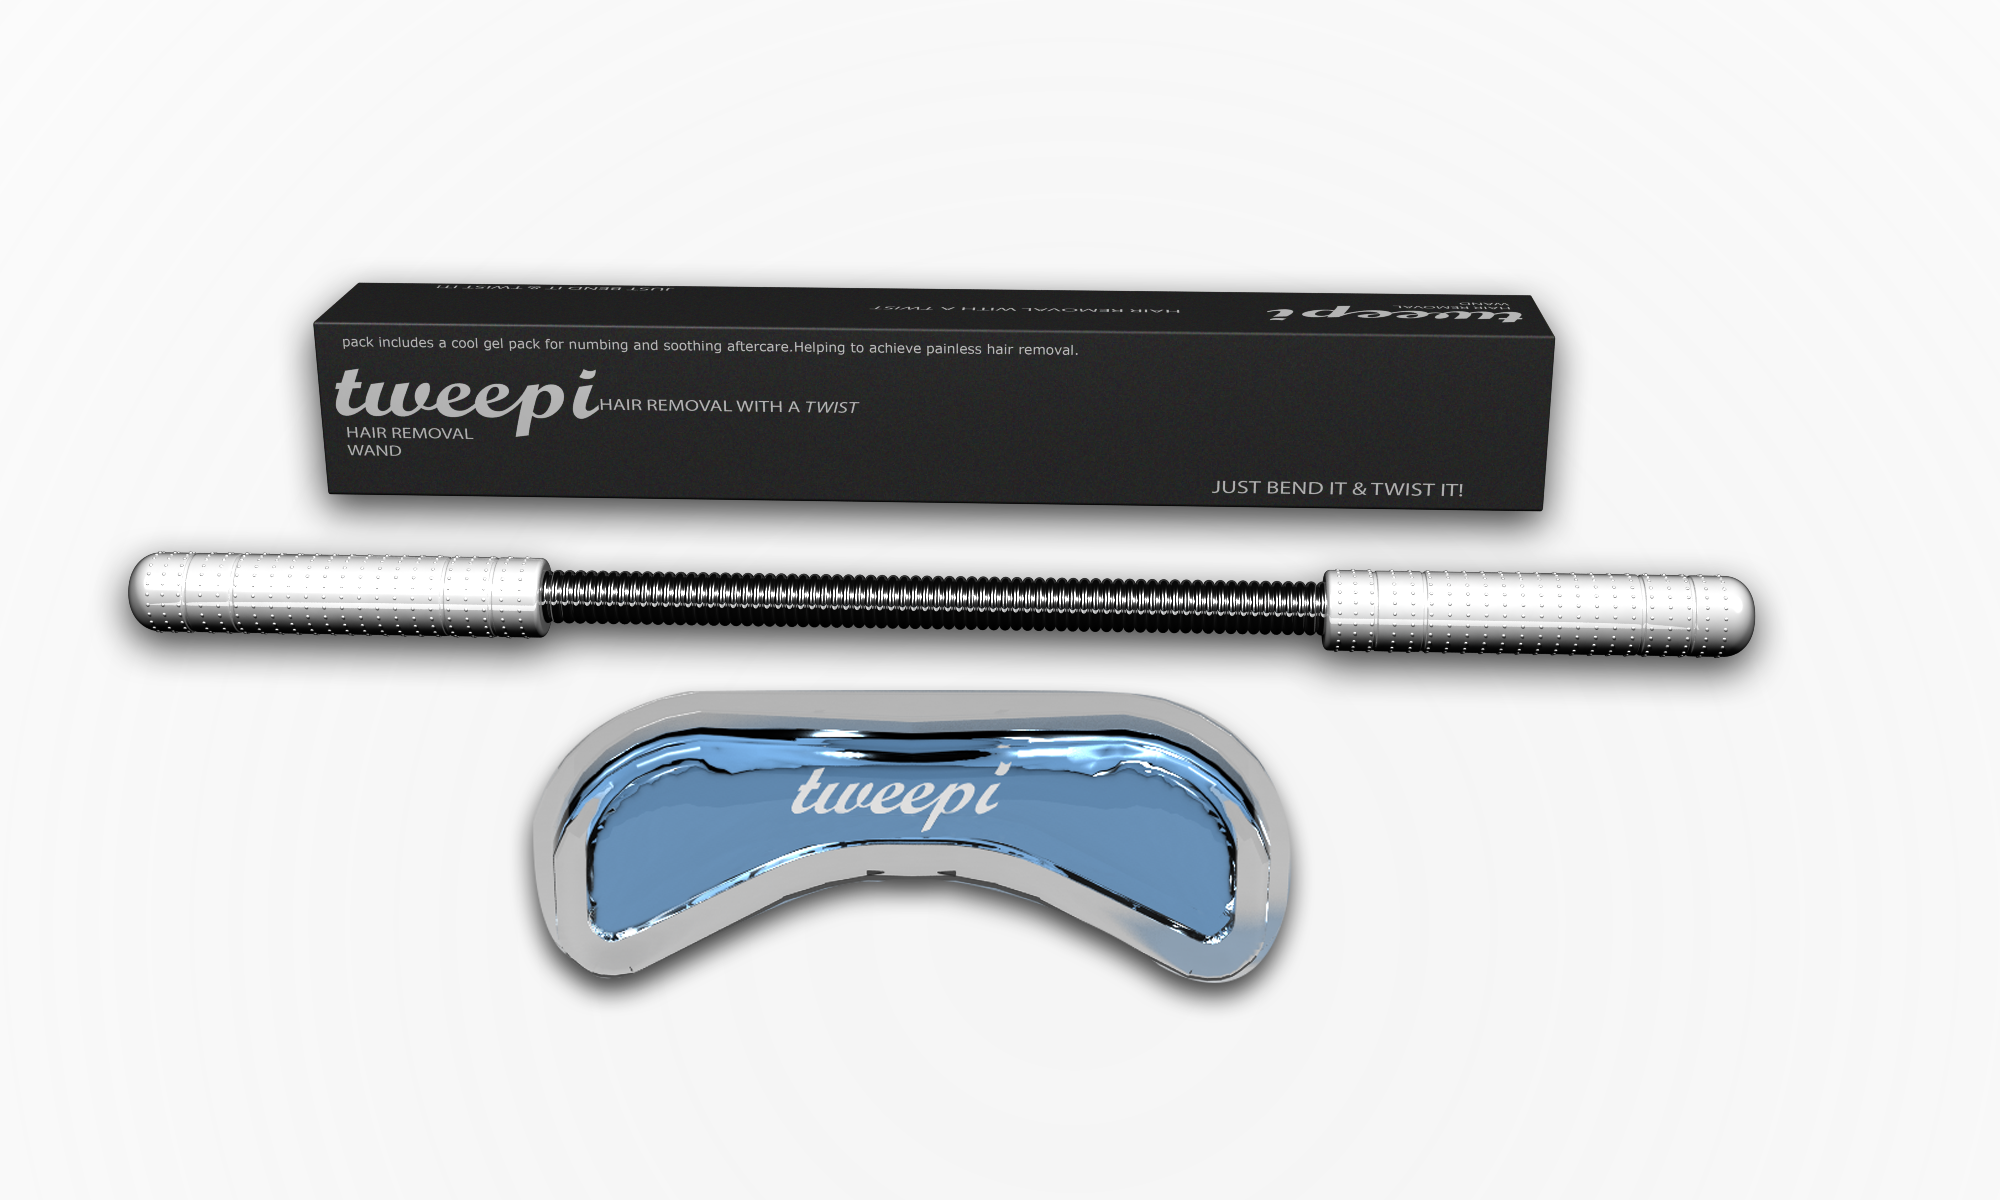 Tweepi Hair Removal Wand, Hair Removal by Miss Pouty